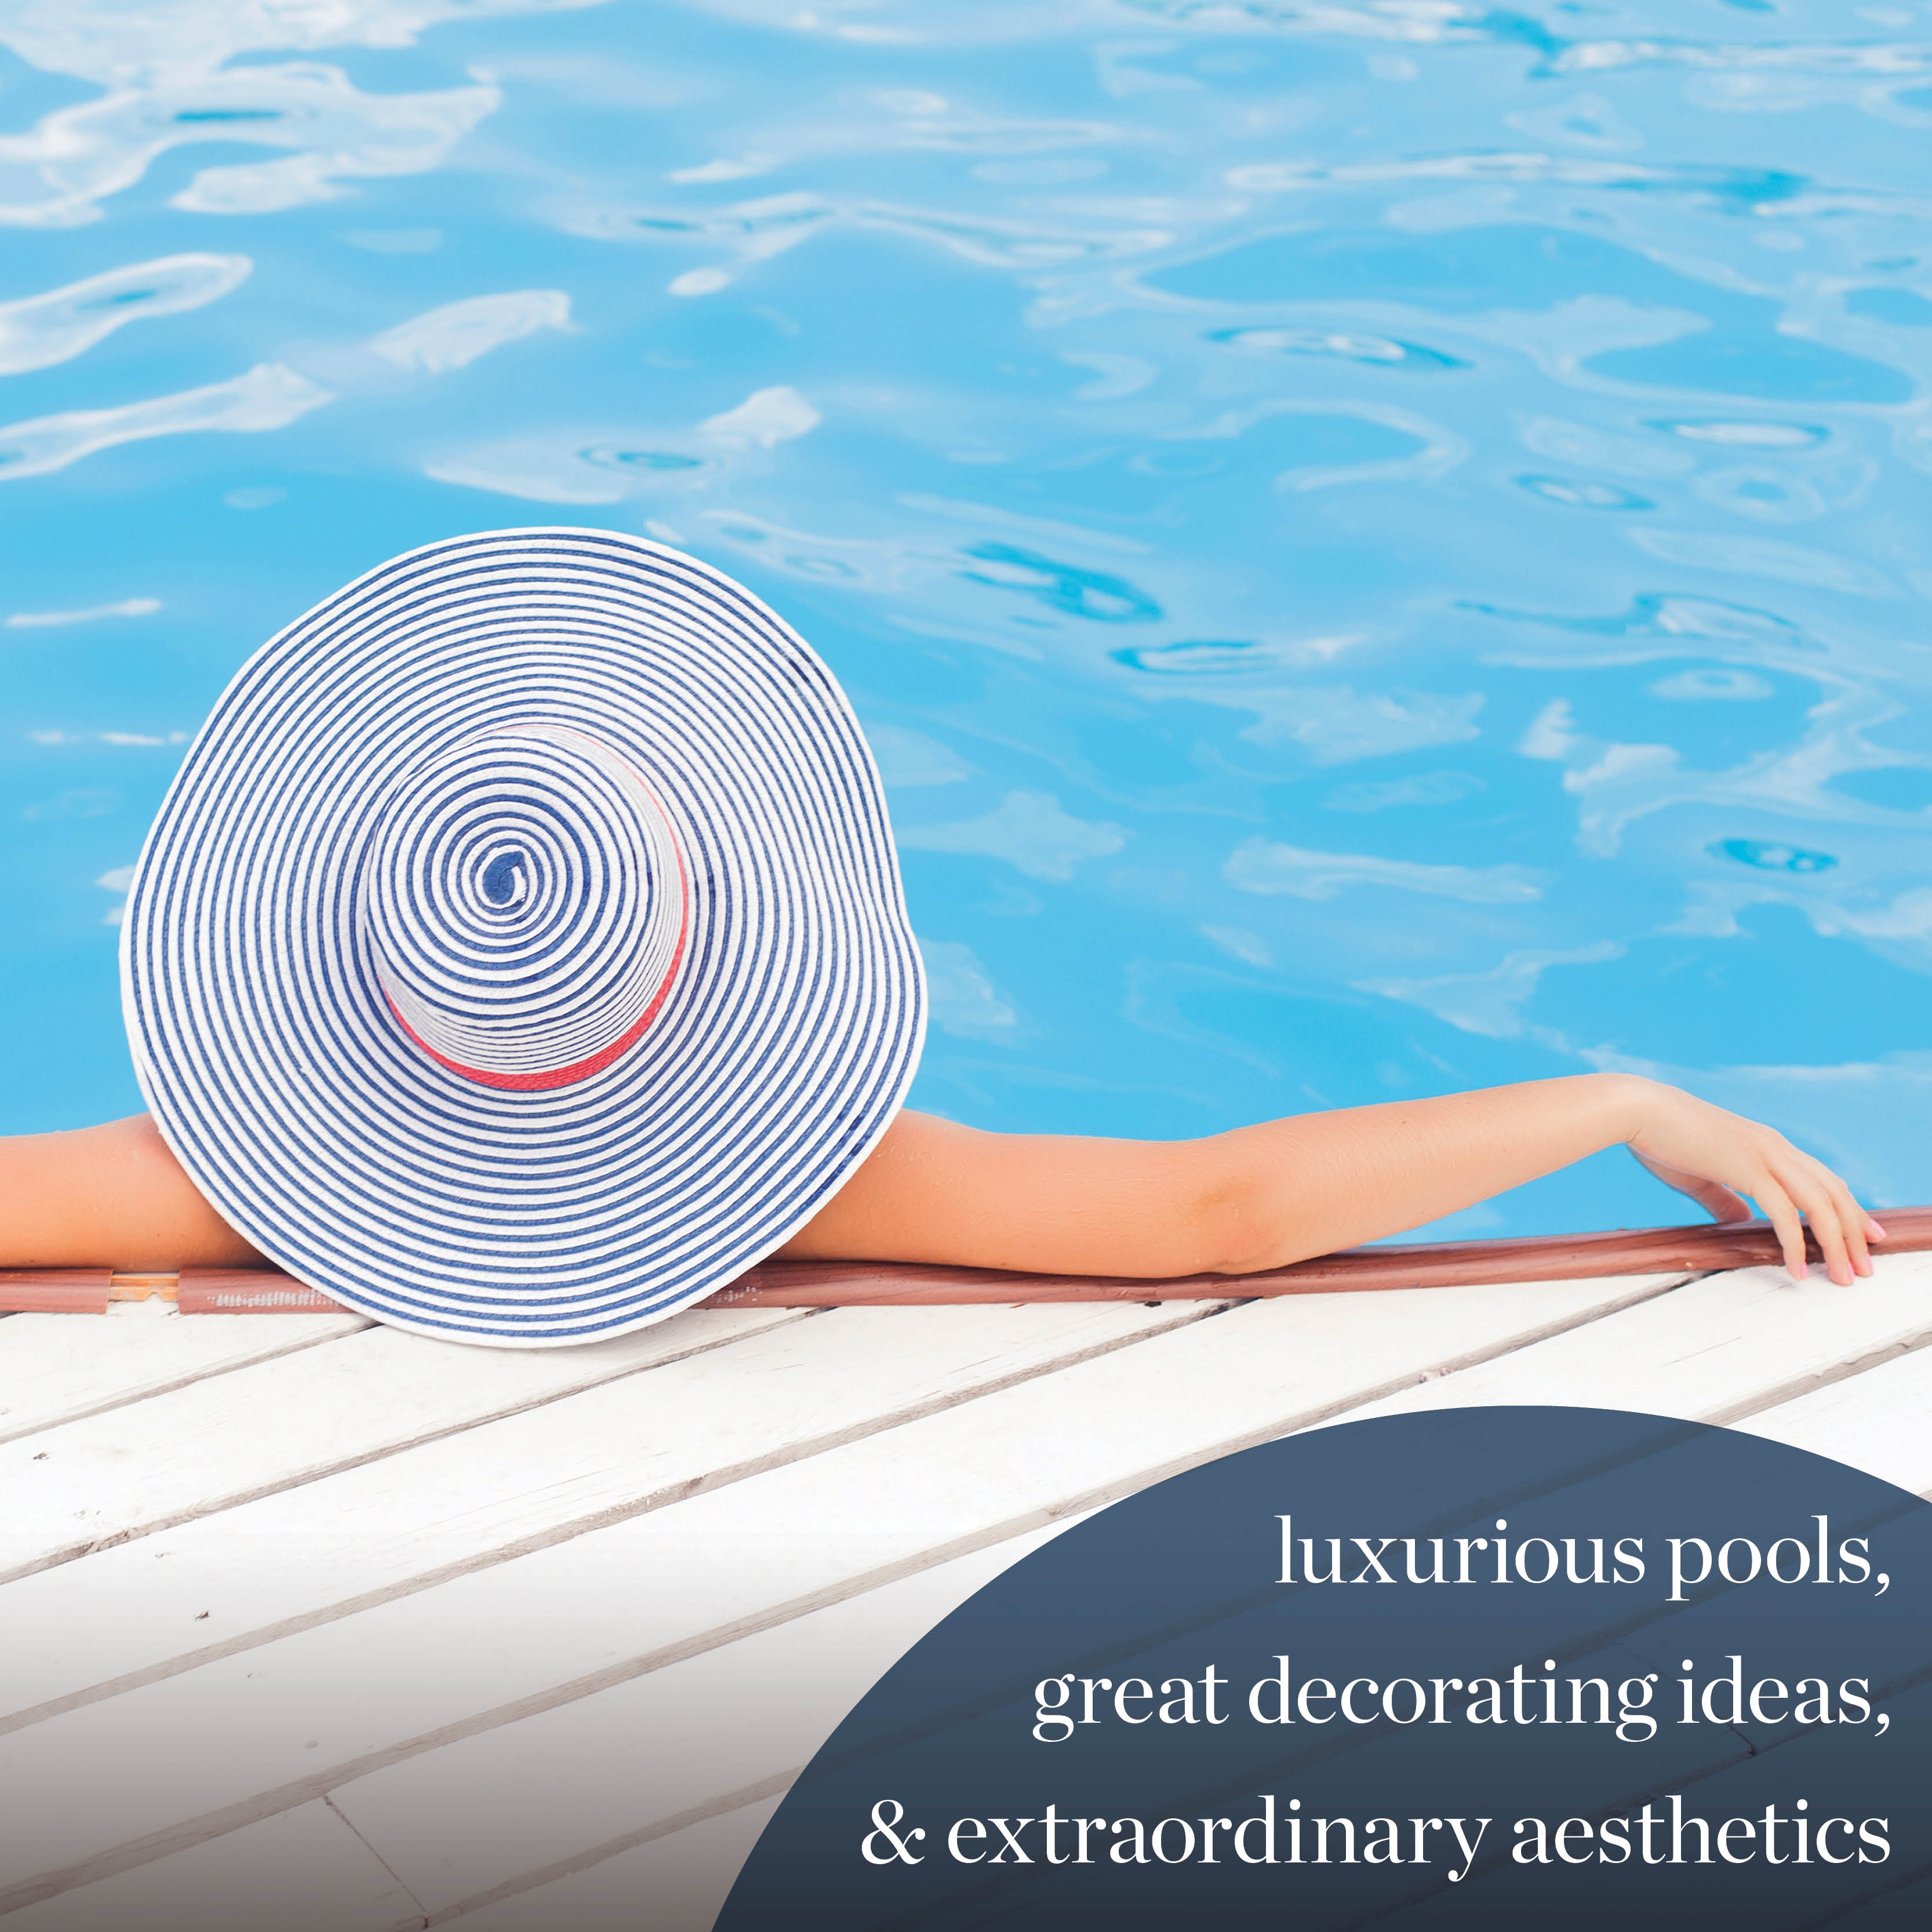 Luxurious Pools